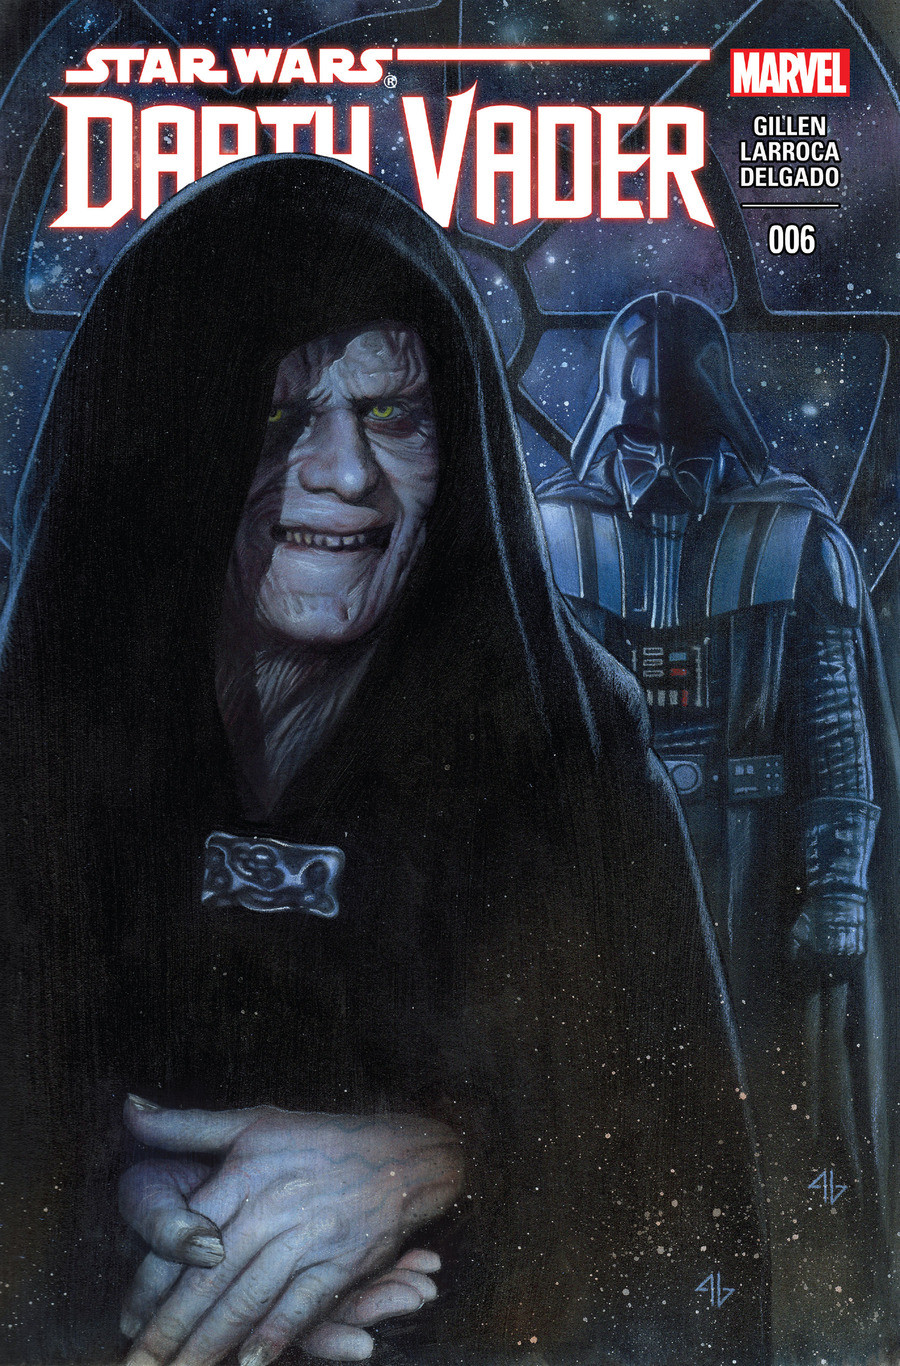 Star Wars Darth Vader issue 6. This is the 6th issue of the canon Darth Vader comic If you havent read the first 3 issues of this comic, and since i wasnt sure